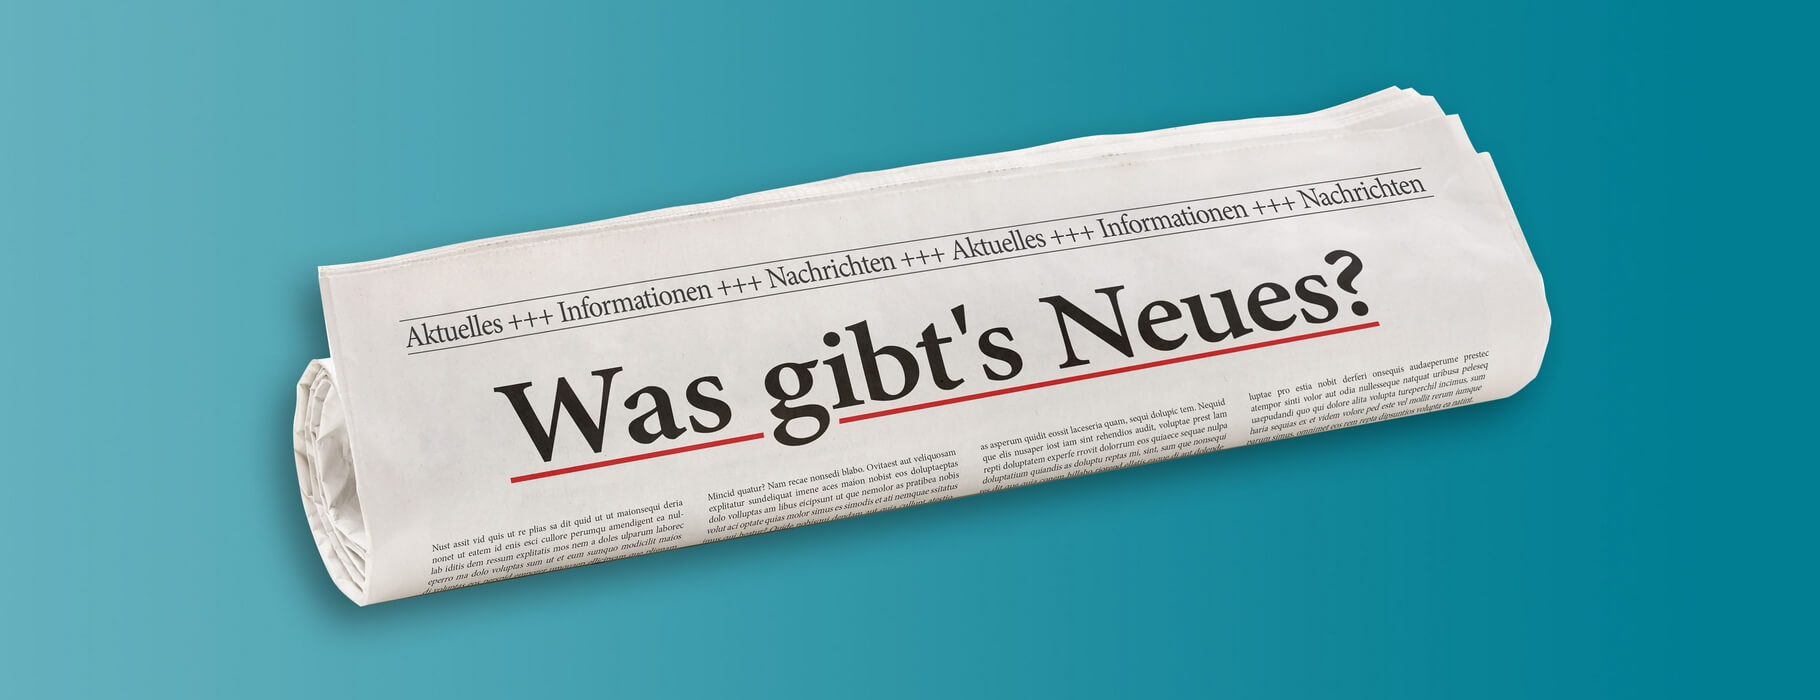 mplus-was-gibts-neues